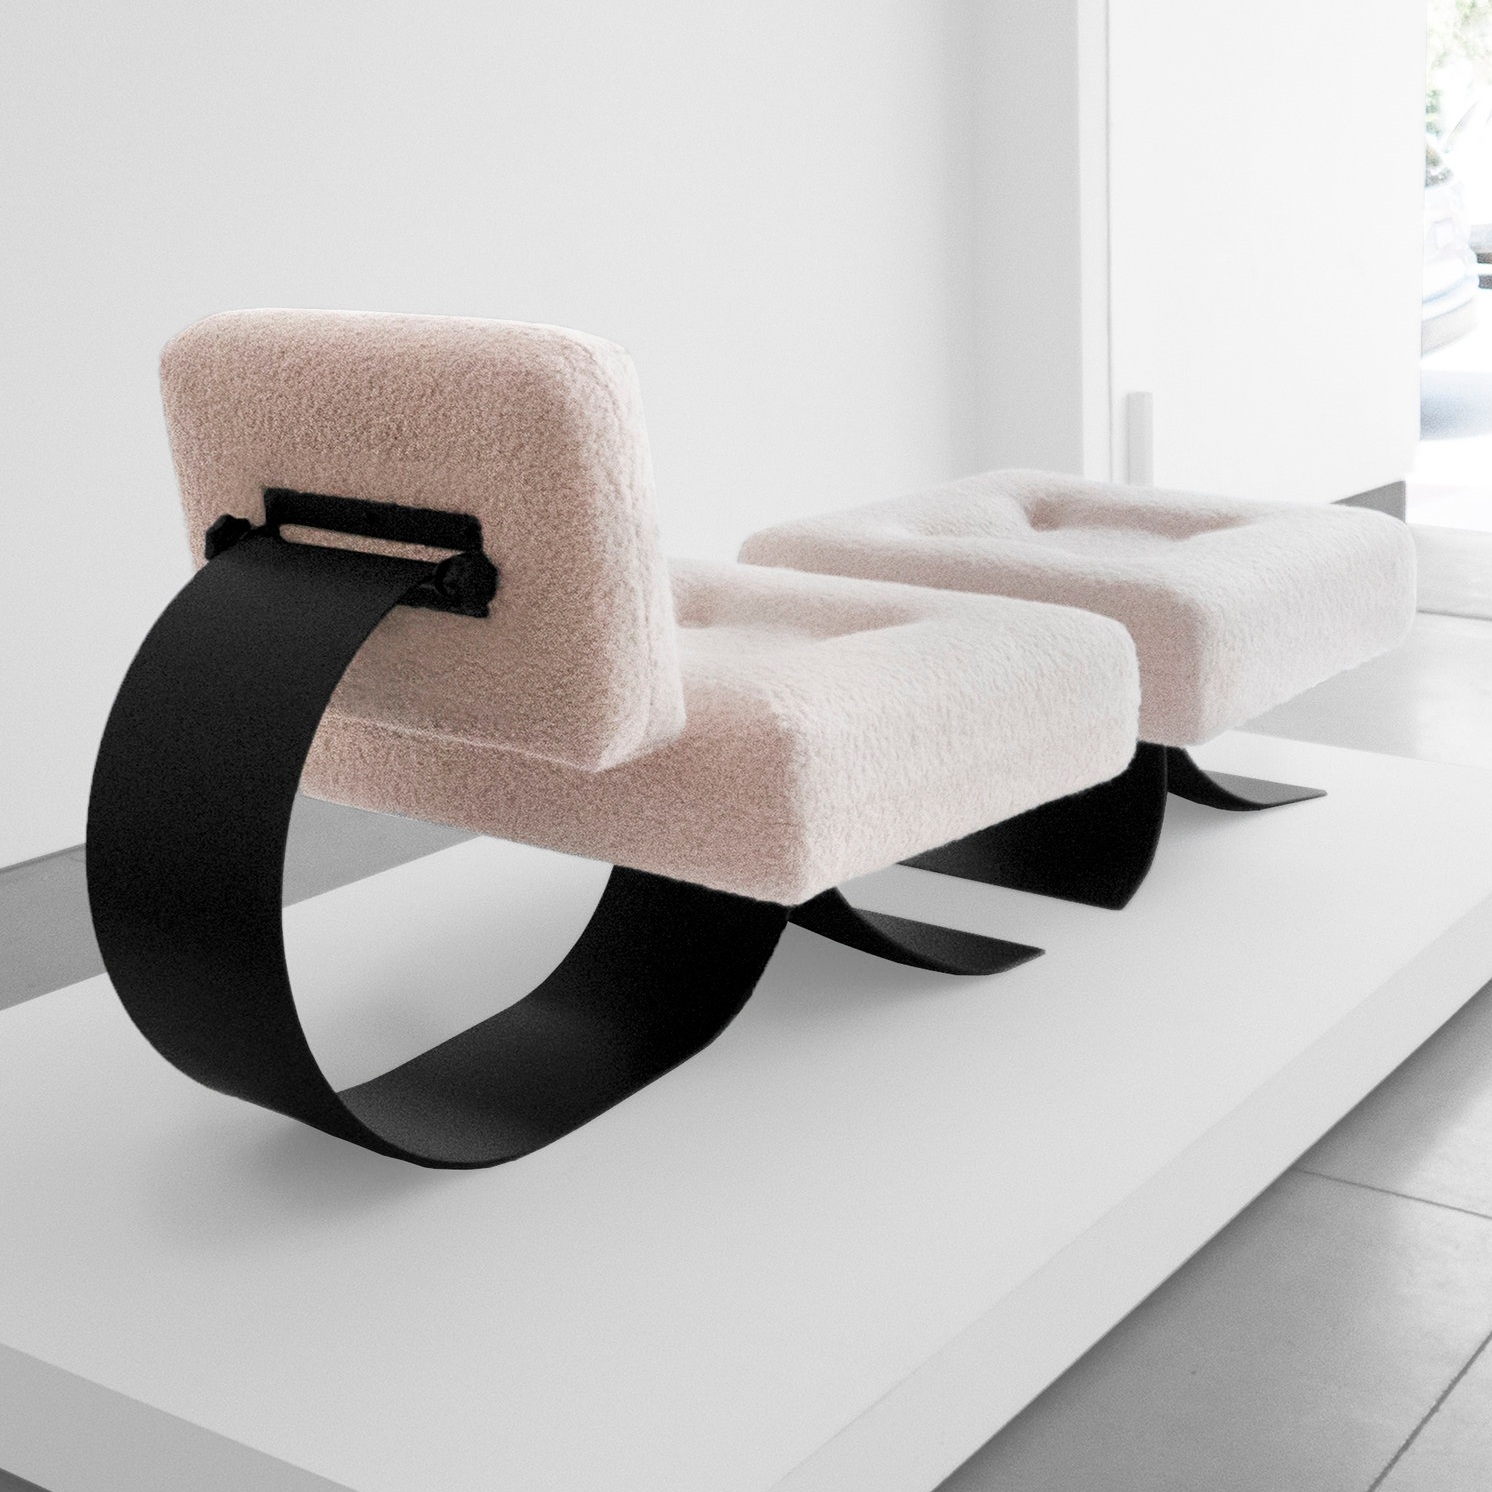 oscar niemeyer attrib. re-issue prototype 'alta' chair SOLD